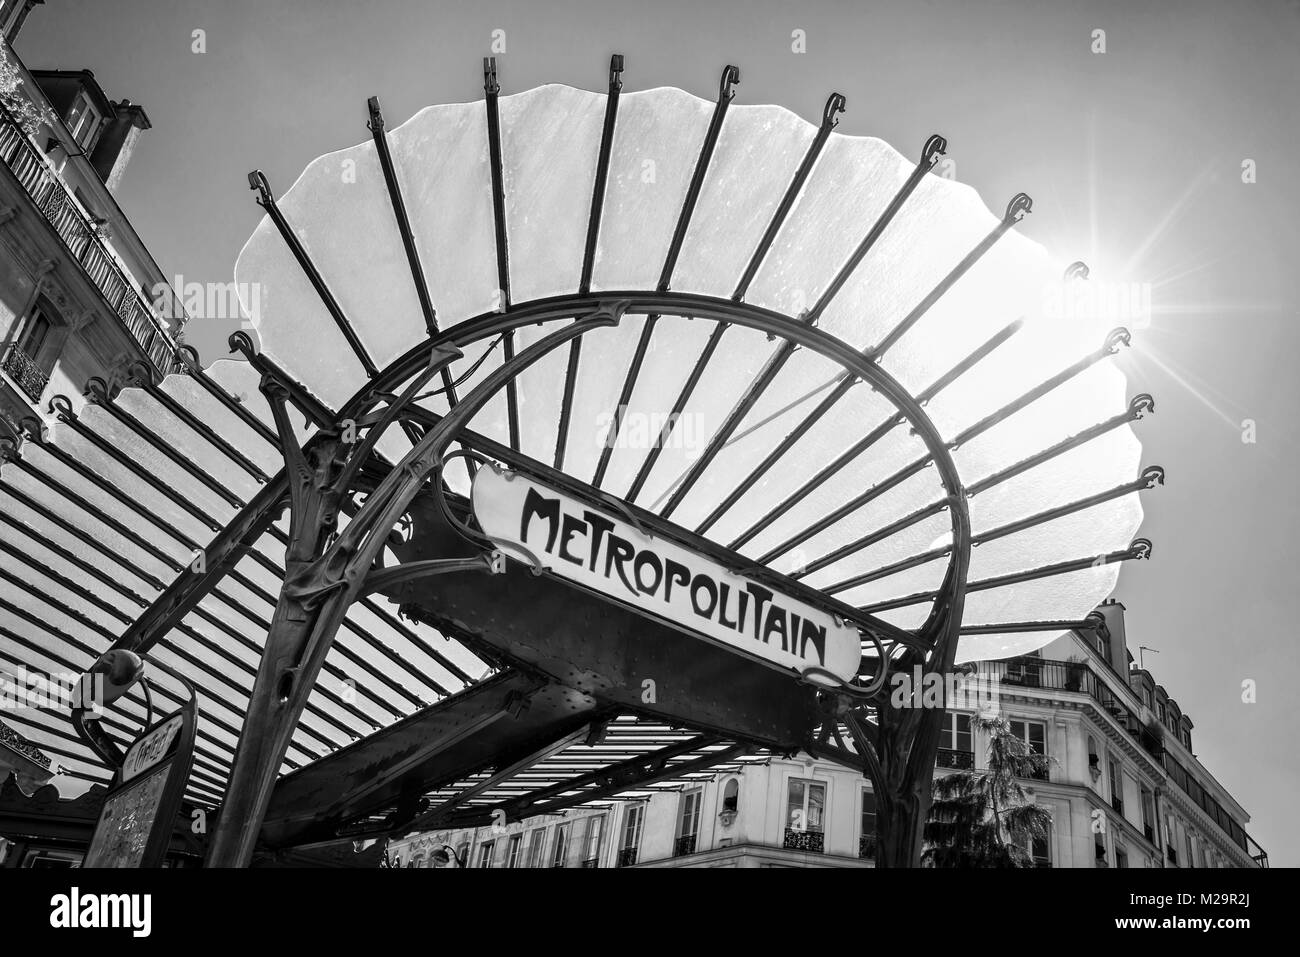 Metropolitain art nouveau sign with a glass roof in paris france black and white